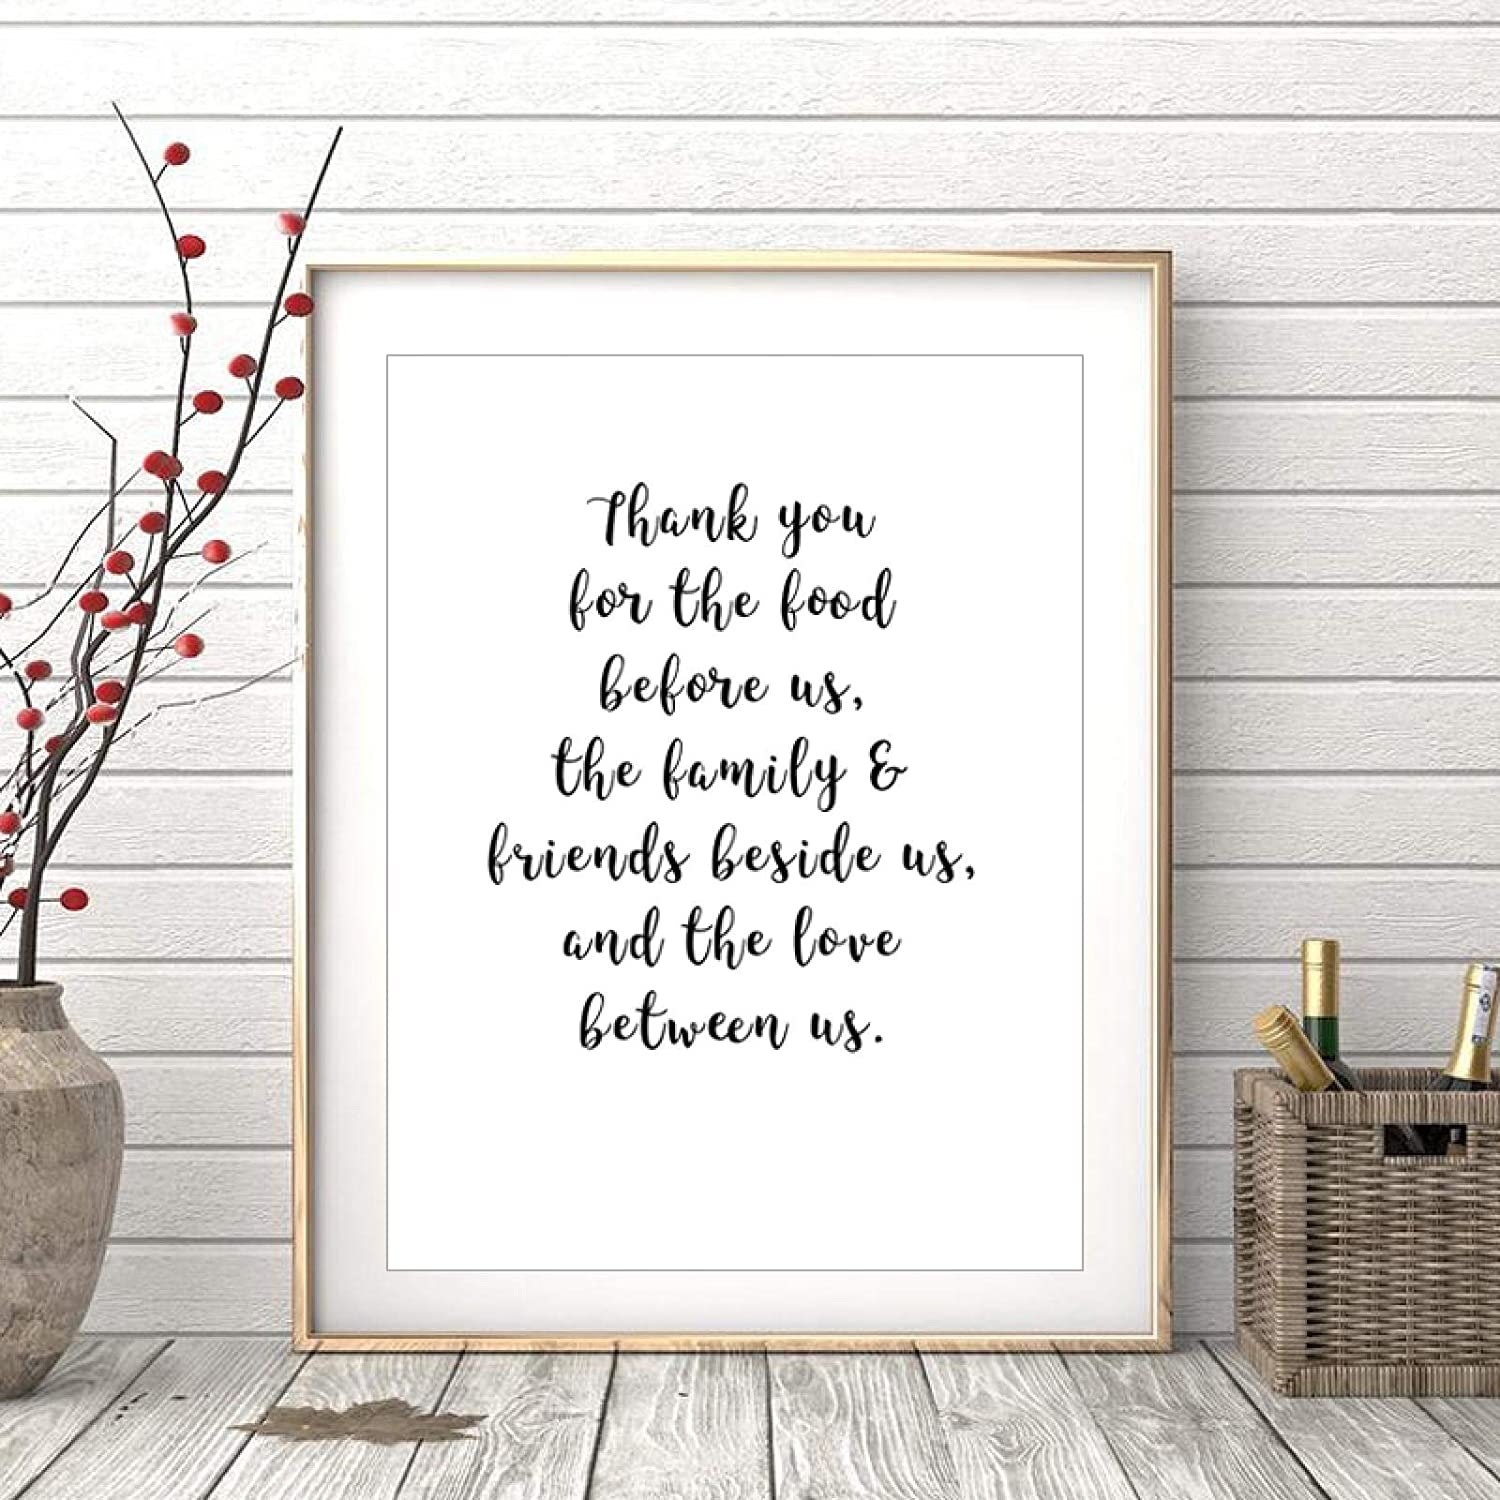 Thank You for The Food Before Us Kitchen Decor Canvas Paintings Black and White POP Wall Art Posters Pictures Home Decoration-50x70cmx1 No Frame